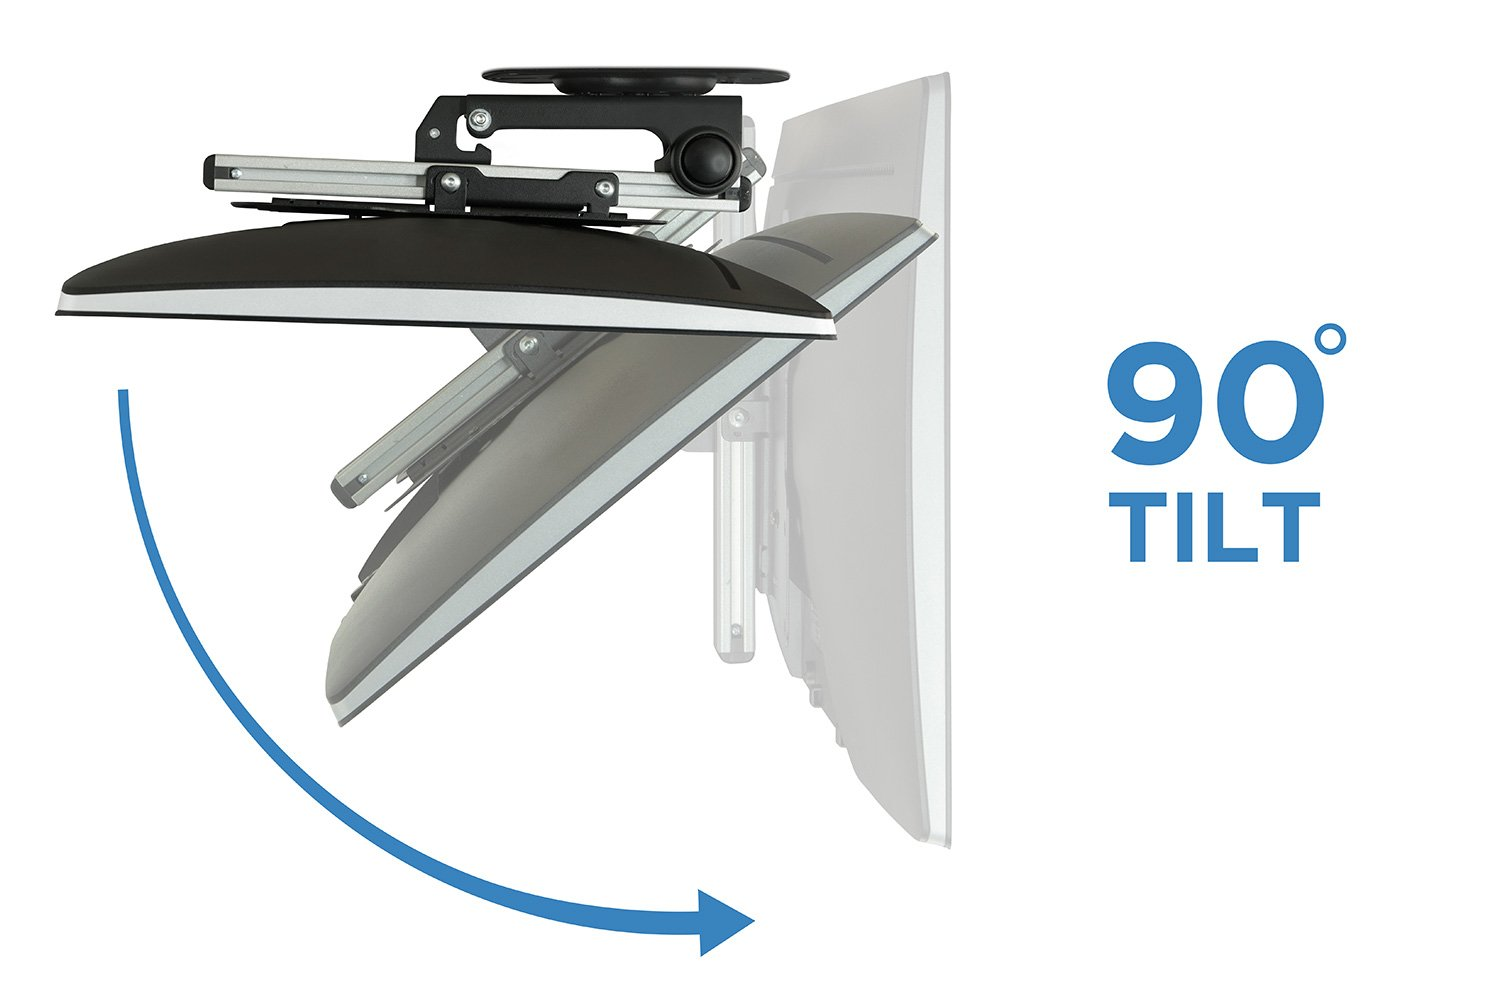 Superieur Amazon.com: Mount It! MI 4222 TV Ceiling Mount Kitchen Under Cabinet TV  Bracket Folding, Retractable, 90 Degree Tilt, Fold Down, Swivel For 17 To  37 Inch ...